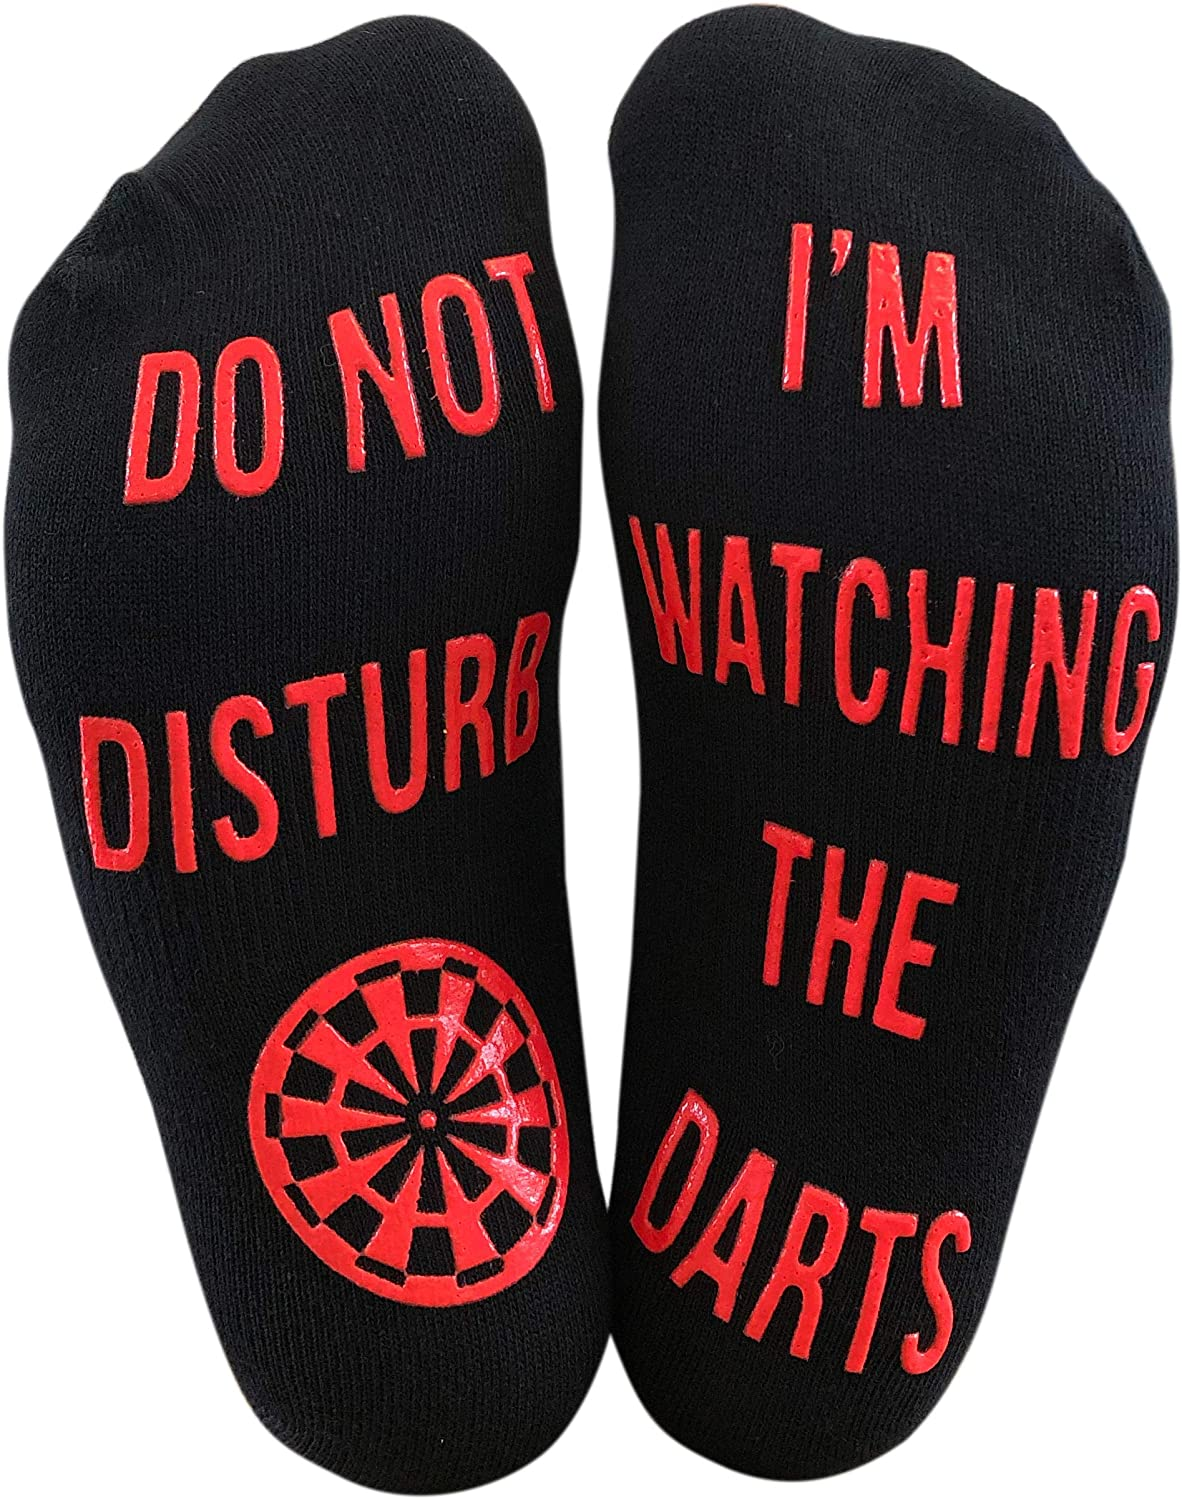 'Do Not Disturb, I'm Watching The Darts' Funny Ankle Socks - Great Christmas Birthday Gift For Darts Fans